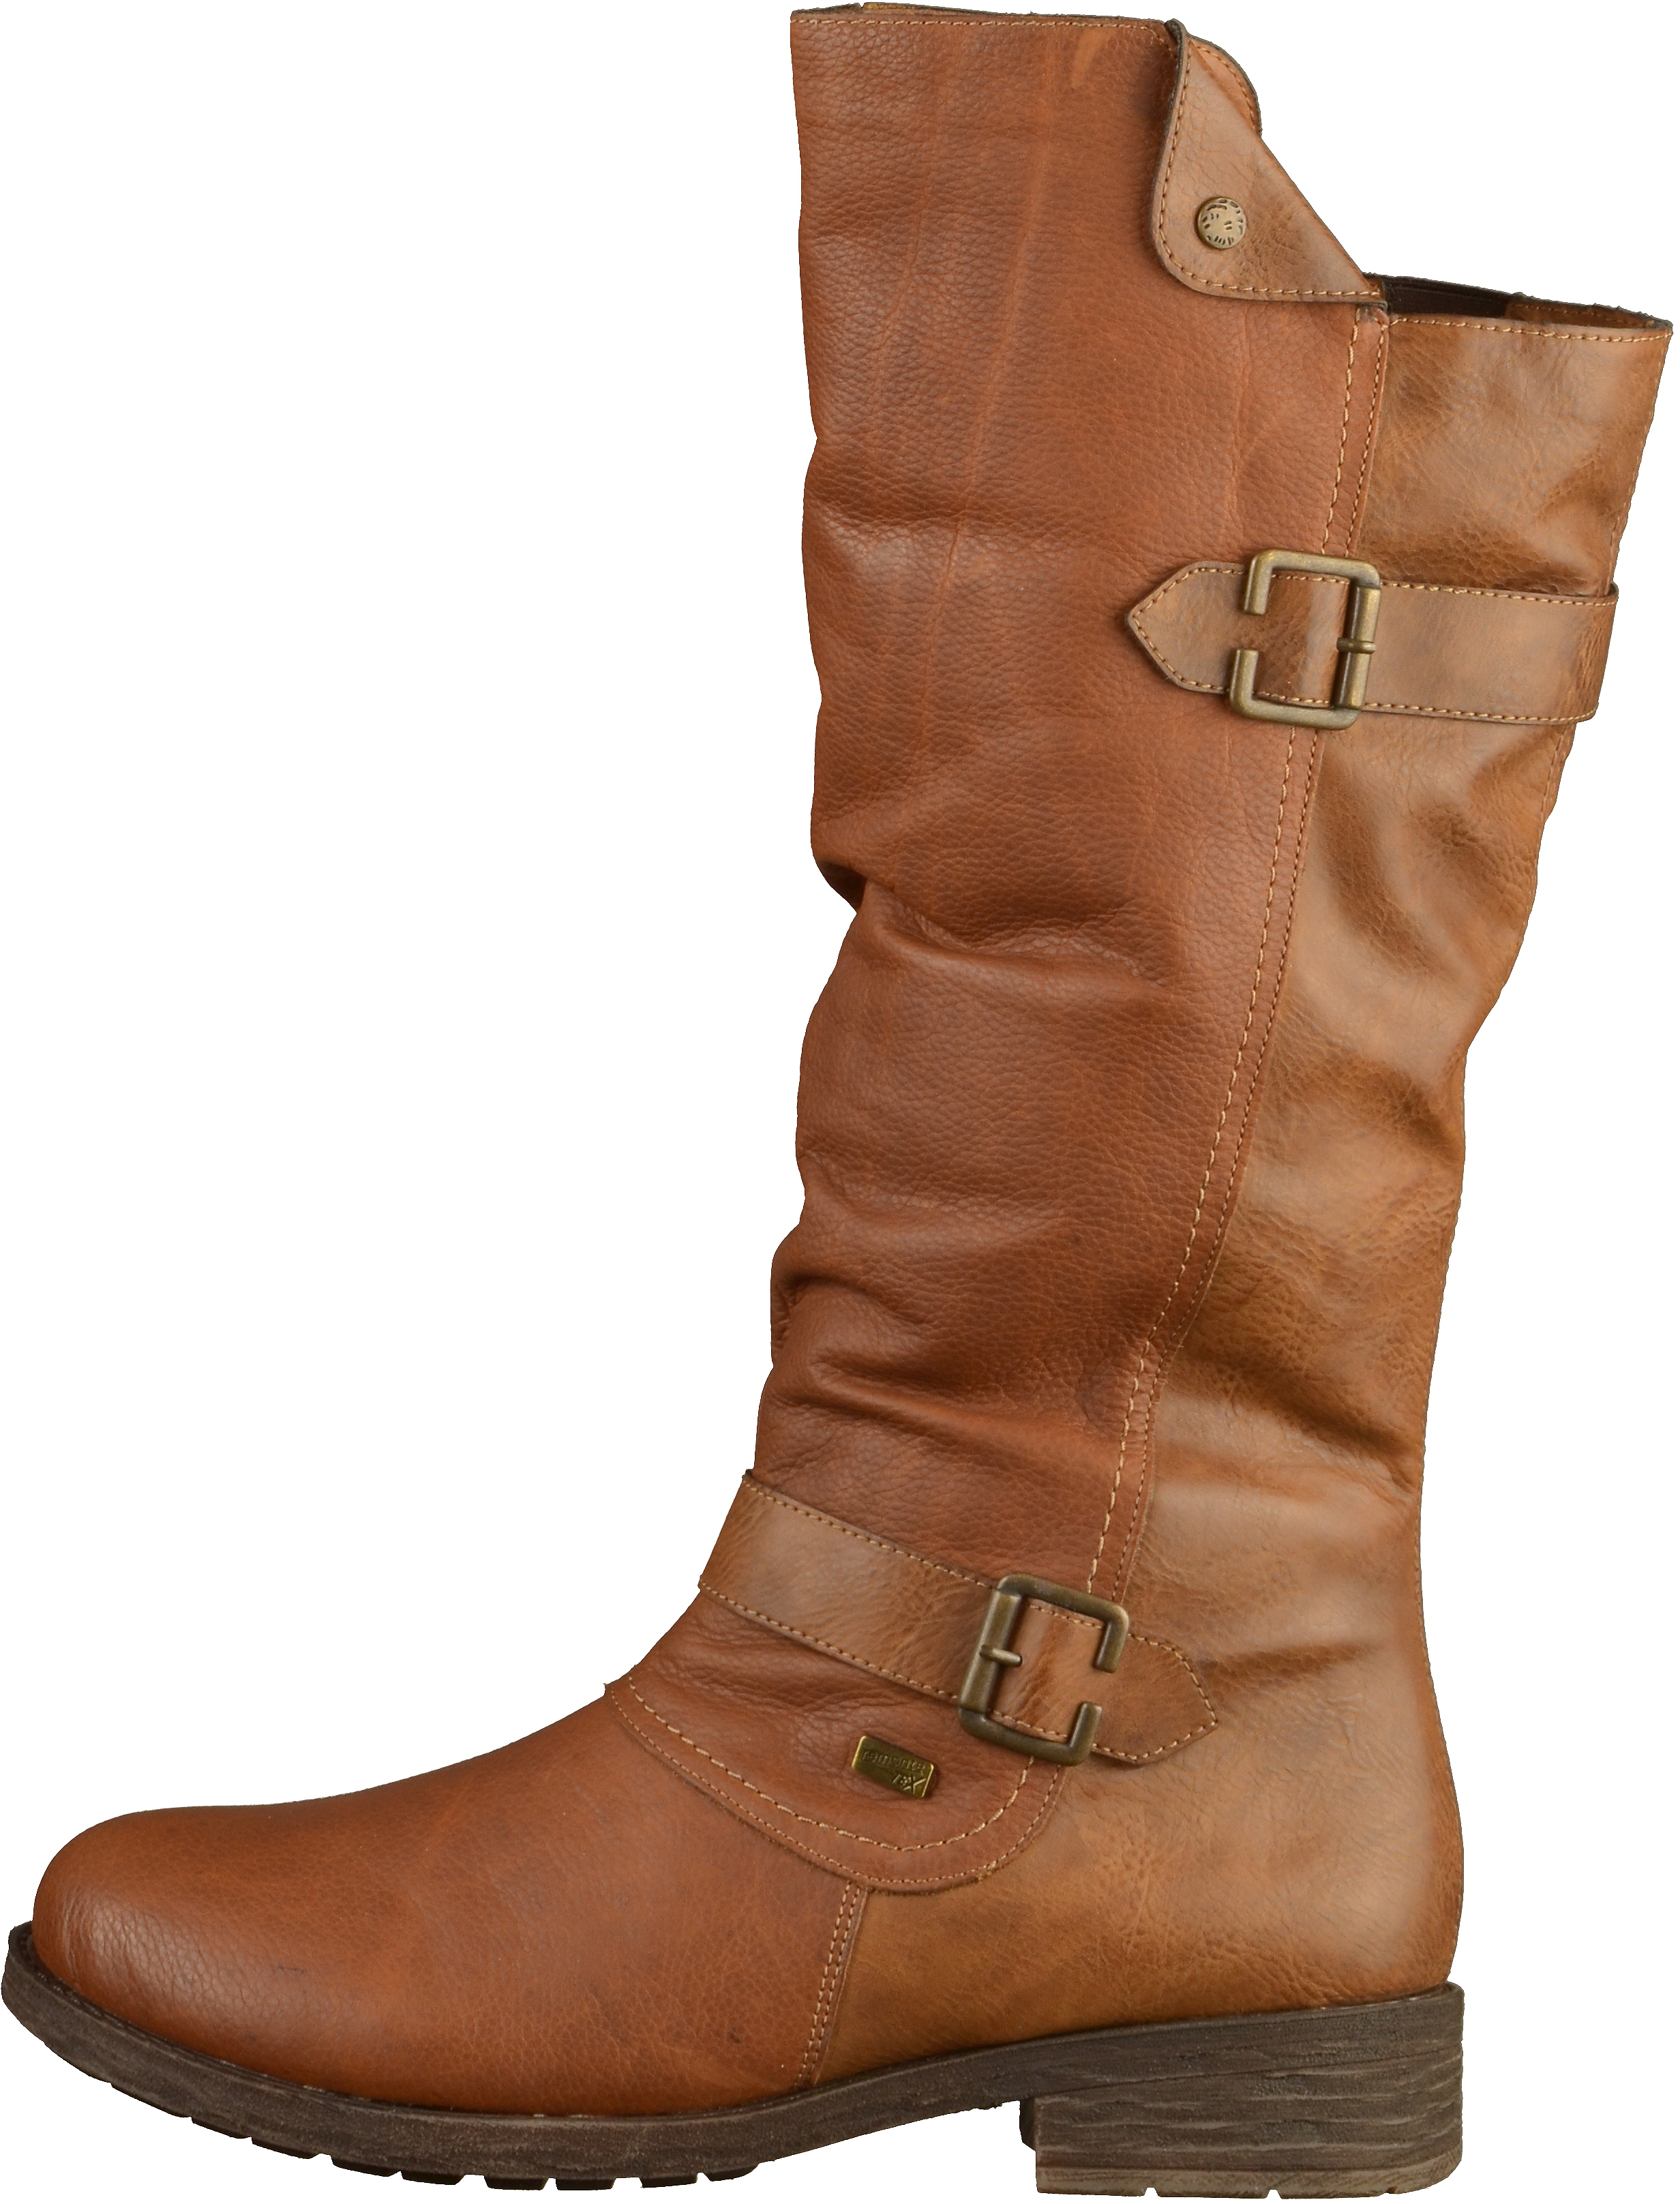 Remonte Boots Leather brown